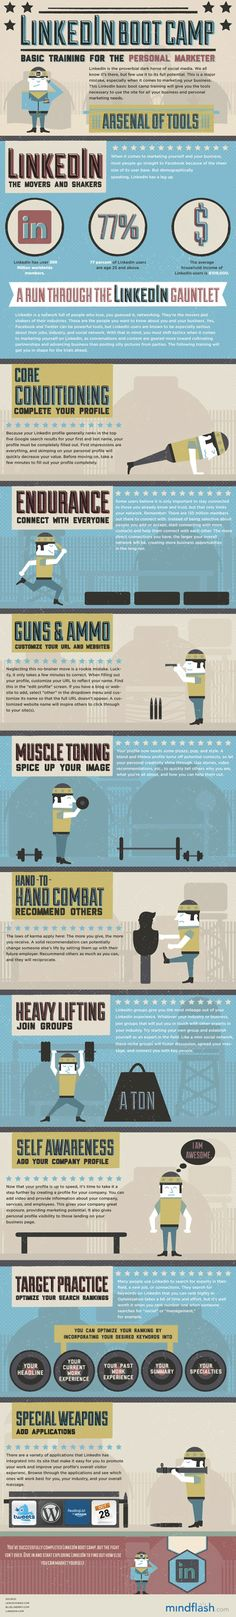 LinkedIn Boot Camp: Time to Tone Up Your Job Search #Infographic